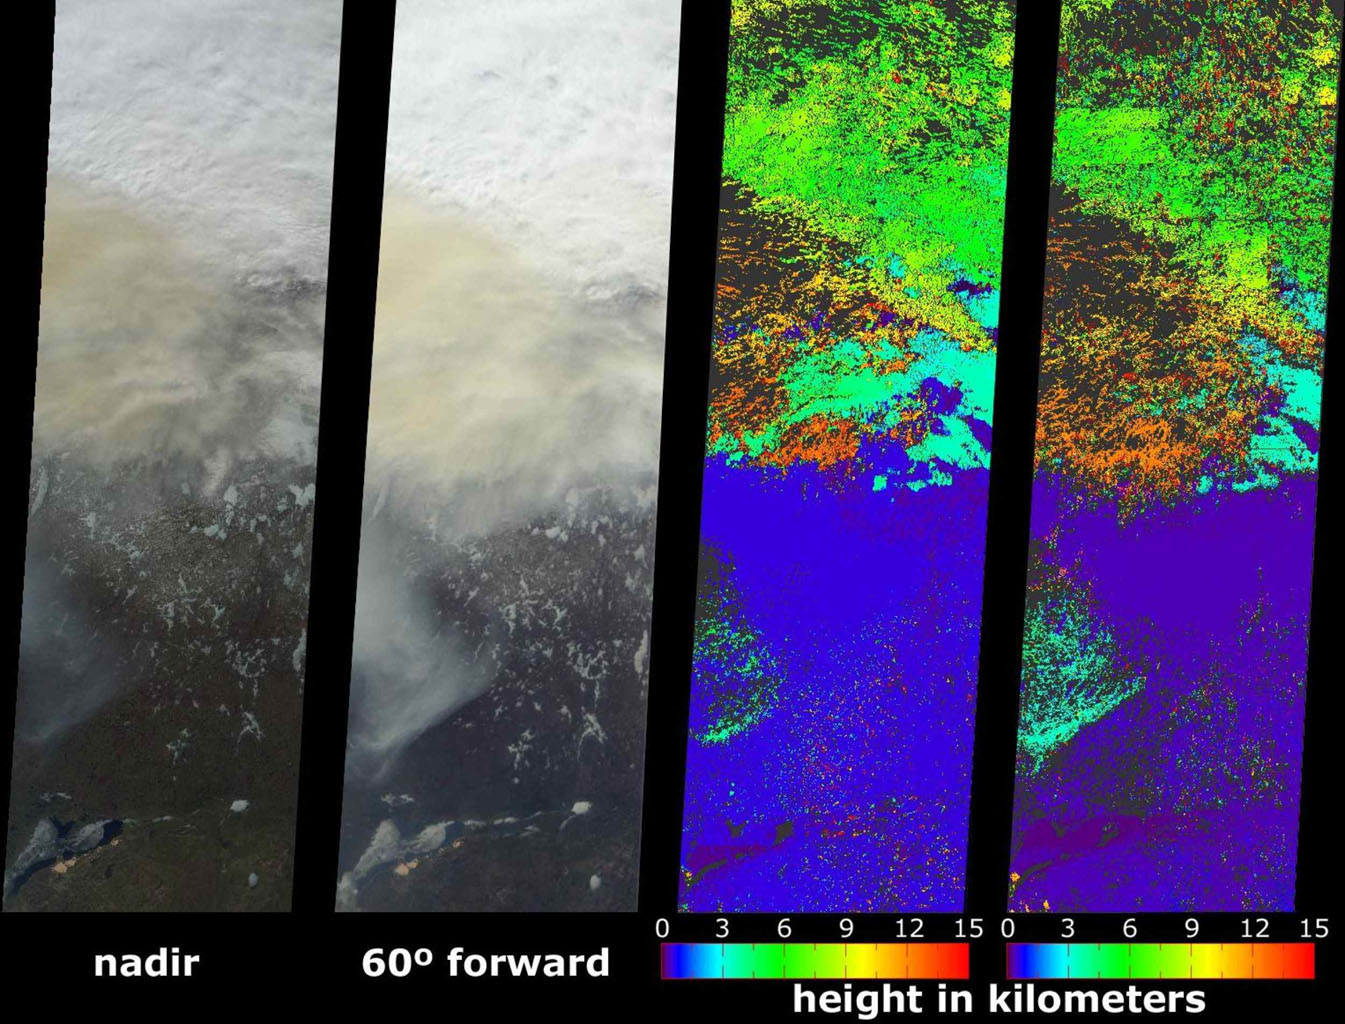 A look at smoke from the Chisholm forest fire, which ignited on May 23, 2001 about 160 kilometers north of Edmonton in Alberta, Canada, as seen by NASA's Terra spacecraft.